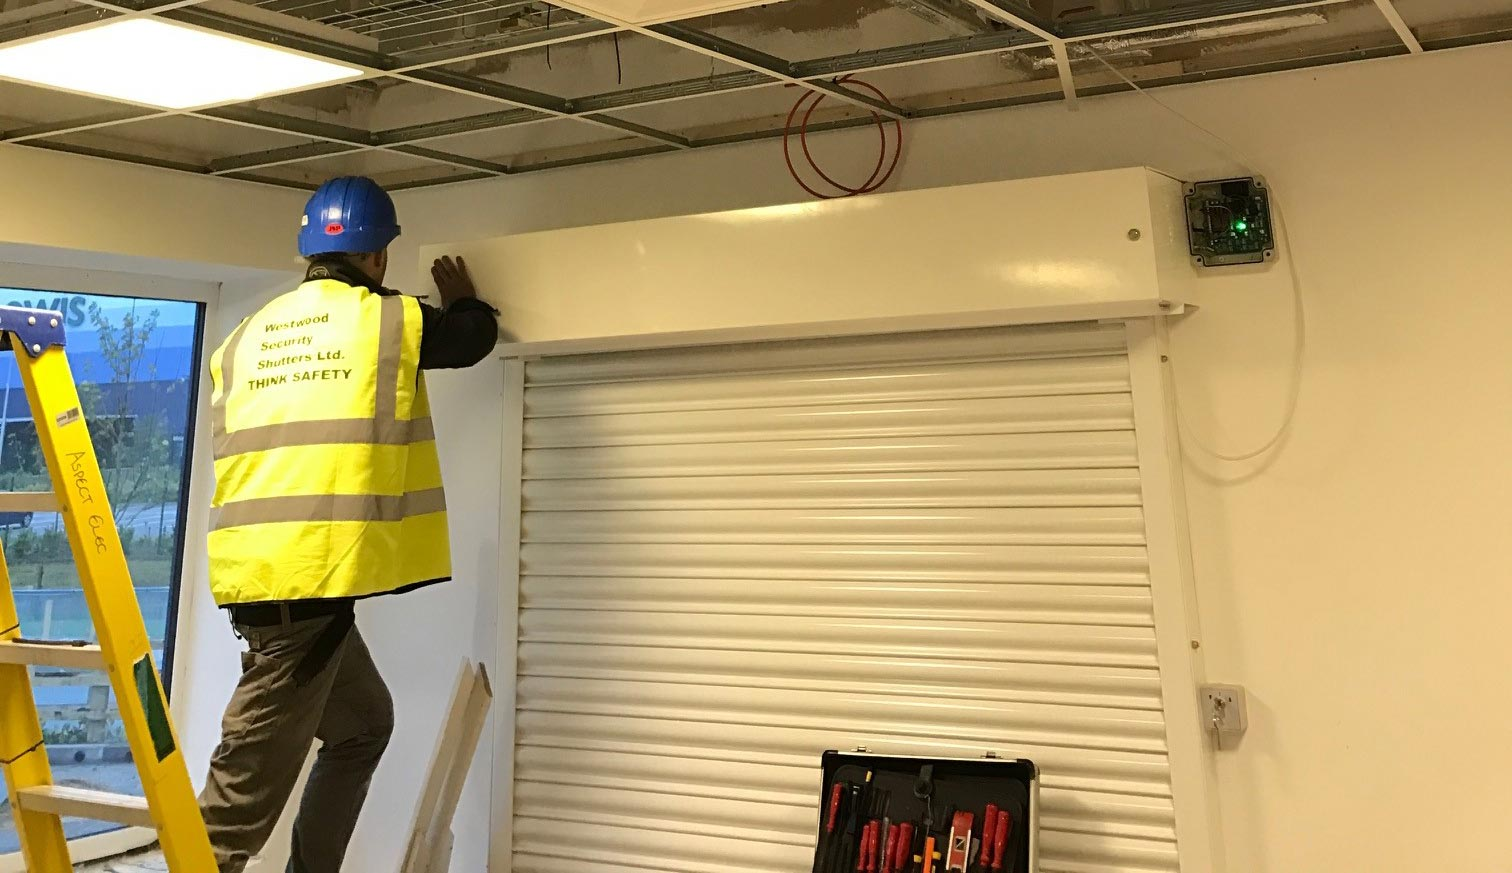 Fire-Shutter Installation, Milton Keynes- Wetswood Security Shutters Ltd.